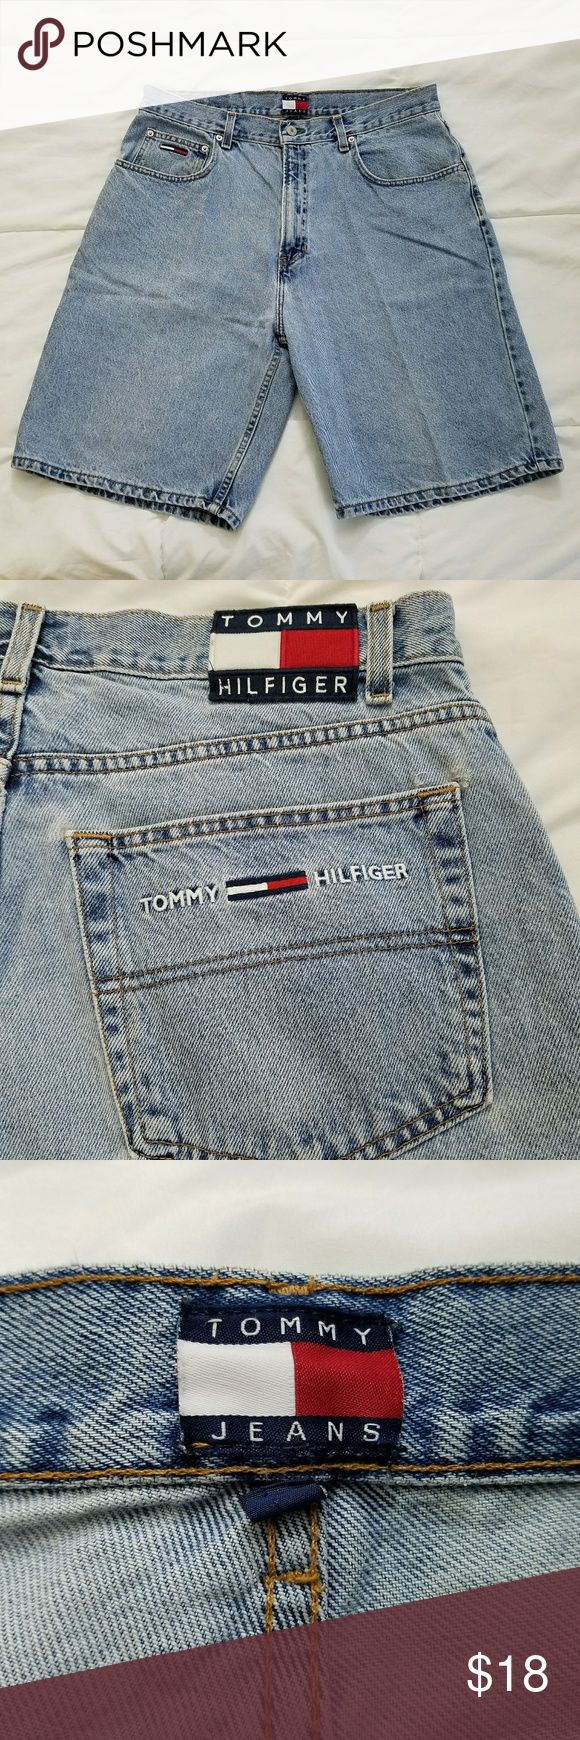 "Vintage Tommy Hilfiger Denim Shorts Mens 36 Good Used Condition Measurements are taken laid flat: Inseam - 10"" Waist - 17""  Great Vintage 90's Style Tommy Hilfiger Shorts Jean Shorts"